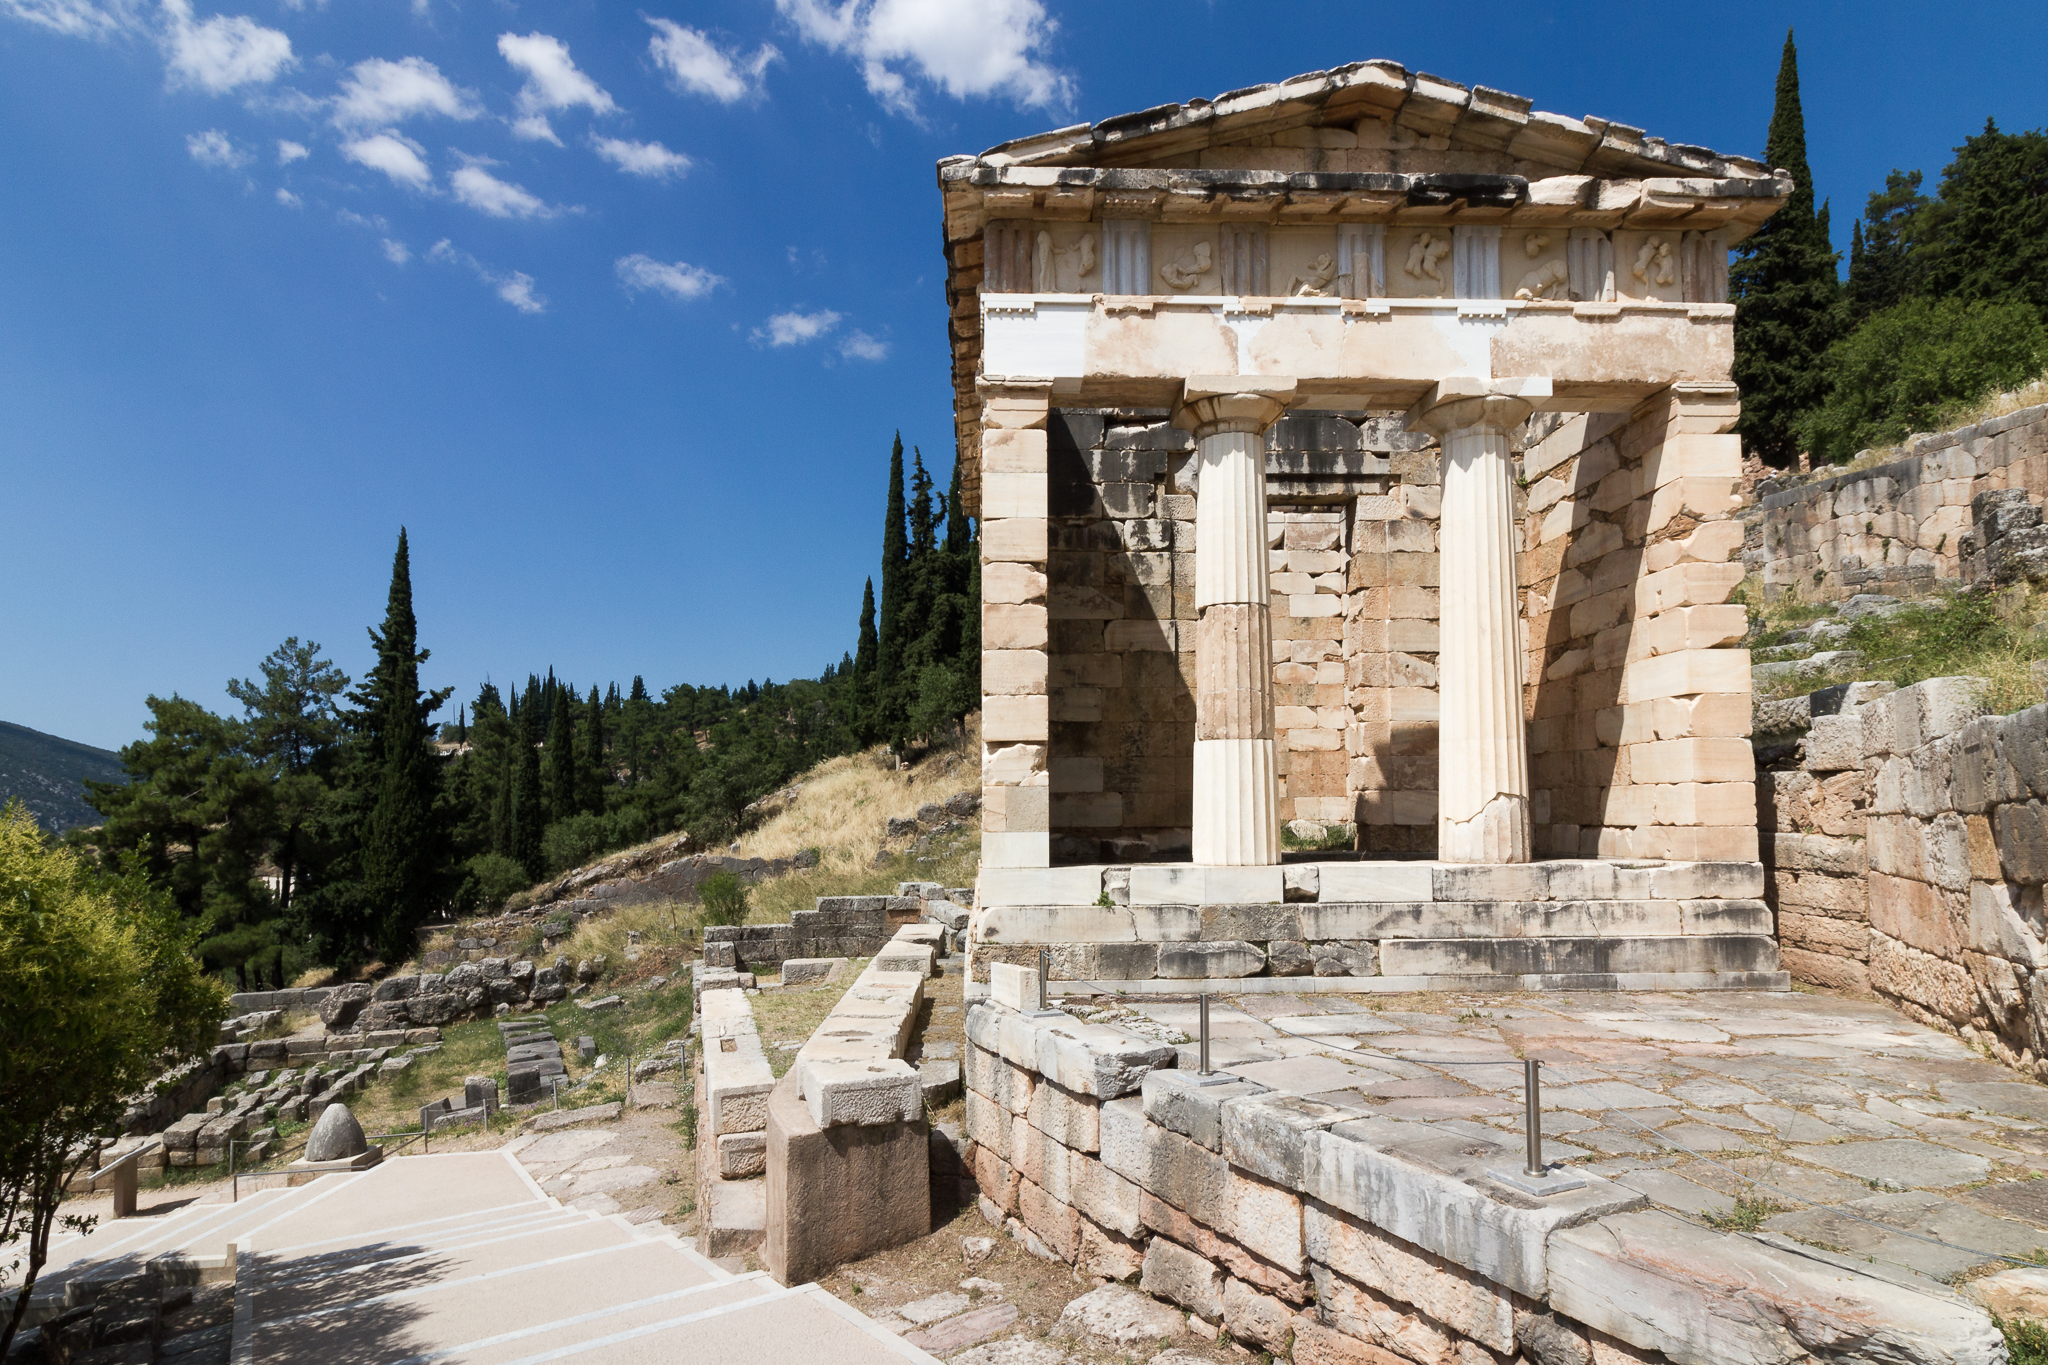 View of a well kept ruin in Delphi